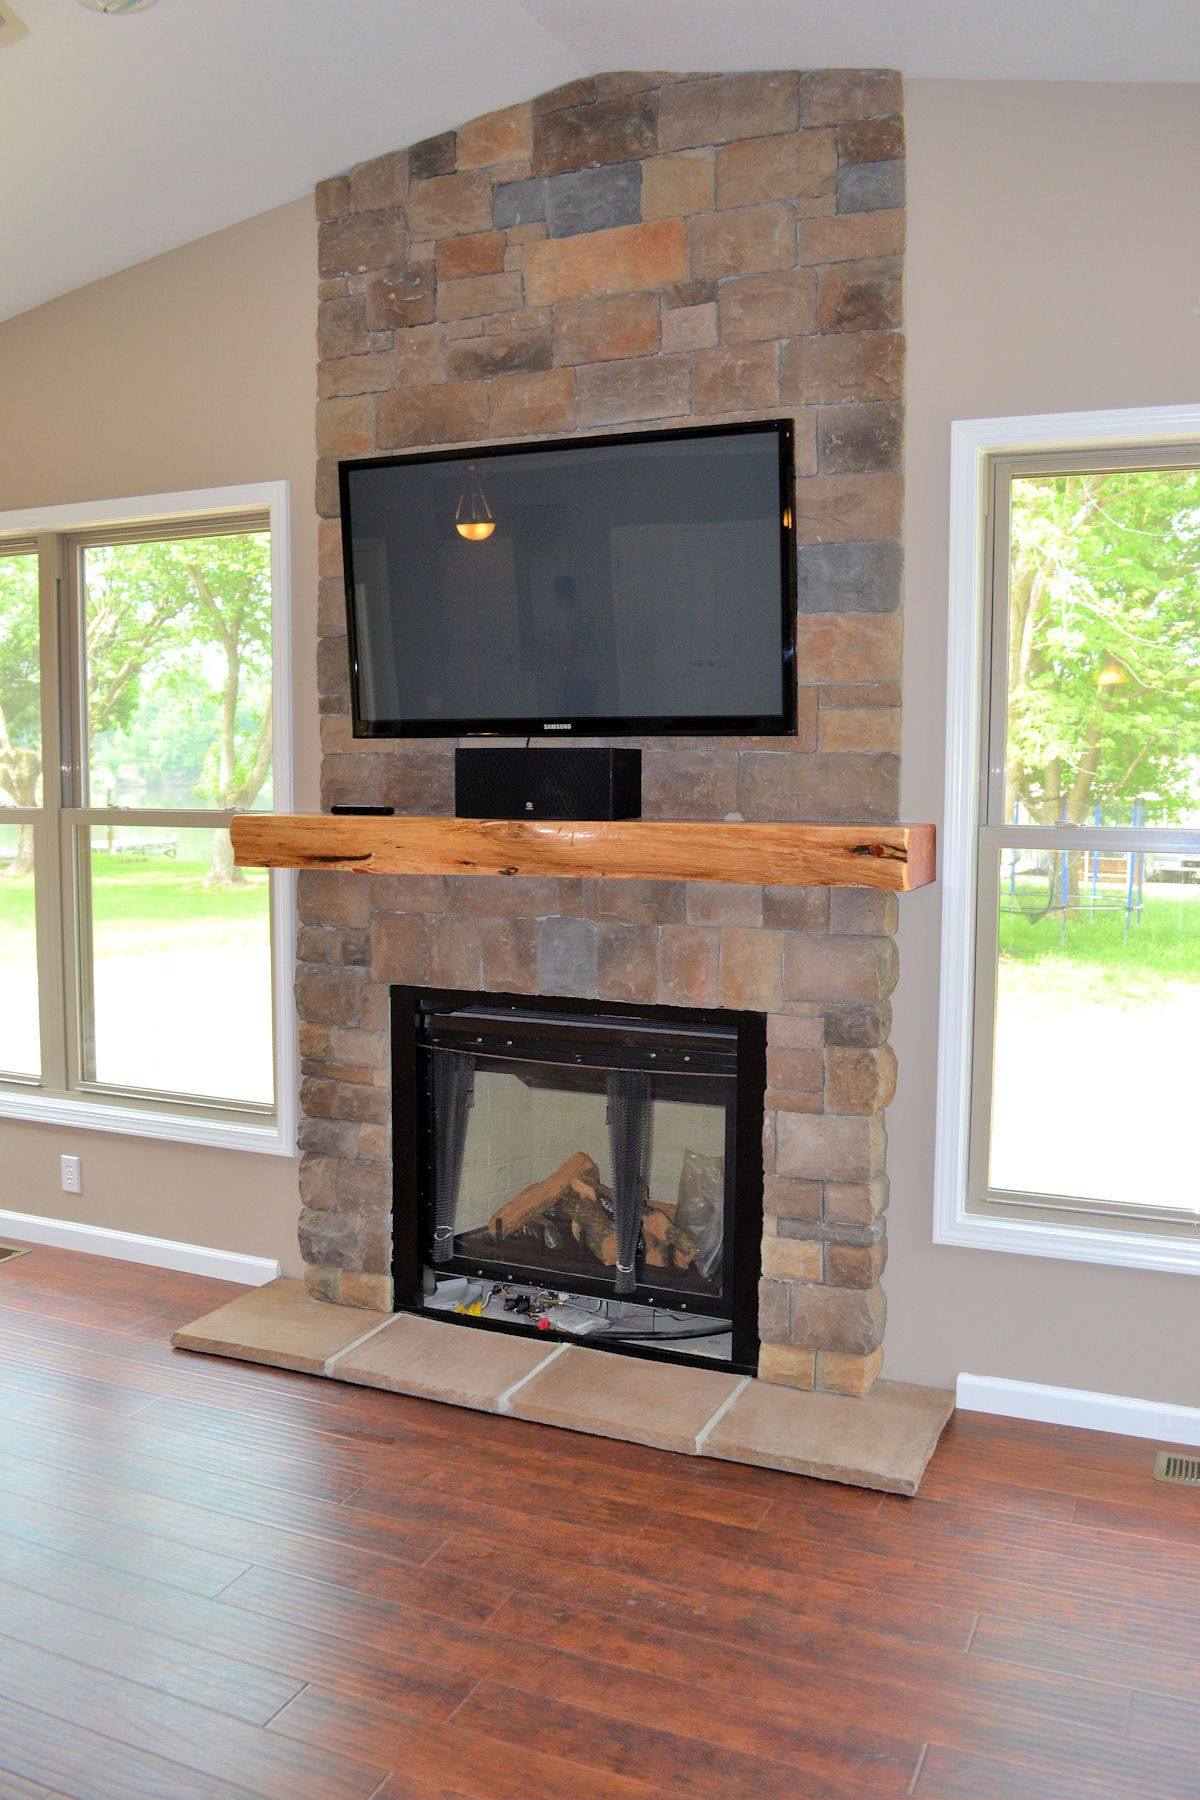 Kamin Umgibt · Kamine · Fireplaces With Tv Above | , Fireplace Stone Wall  And Electric Fireplace With Tv Above .